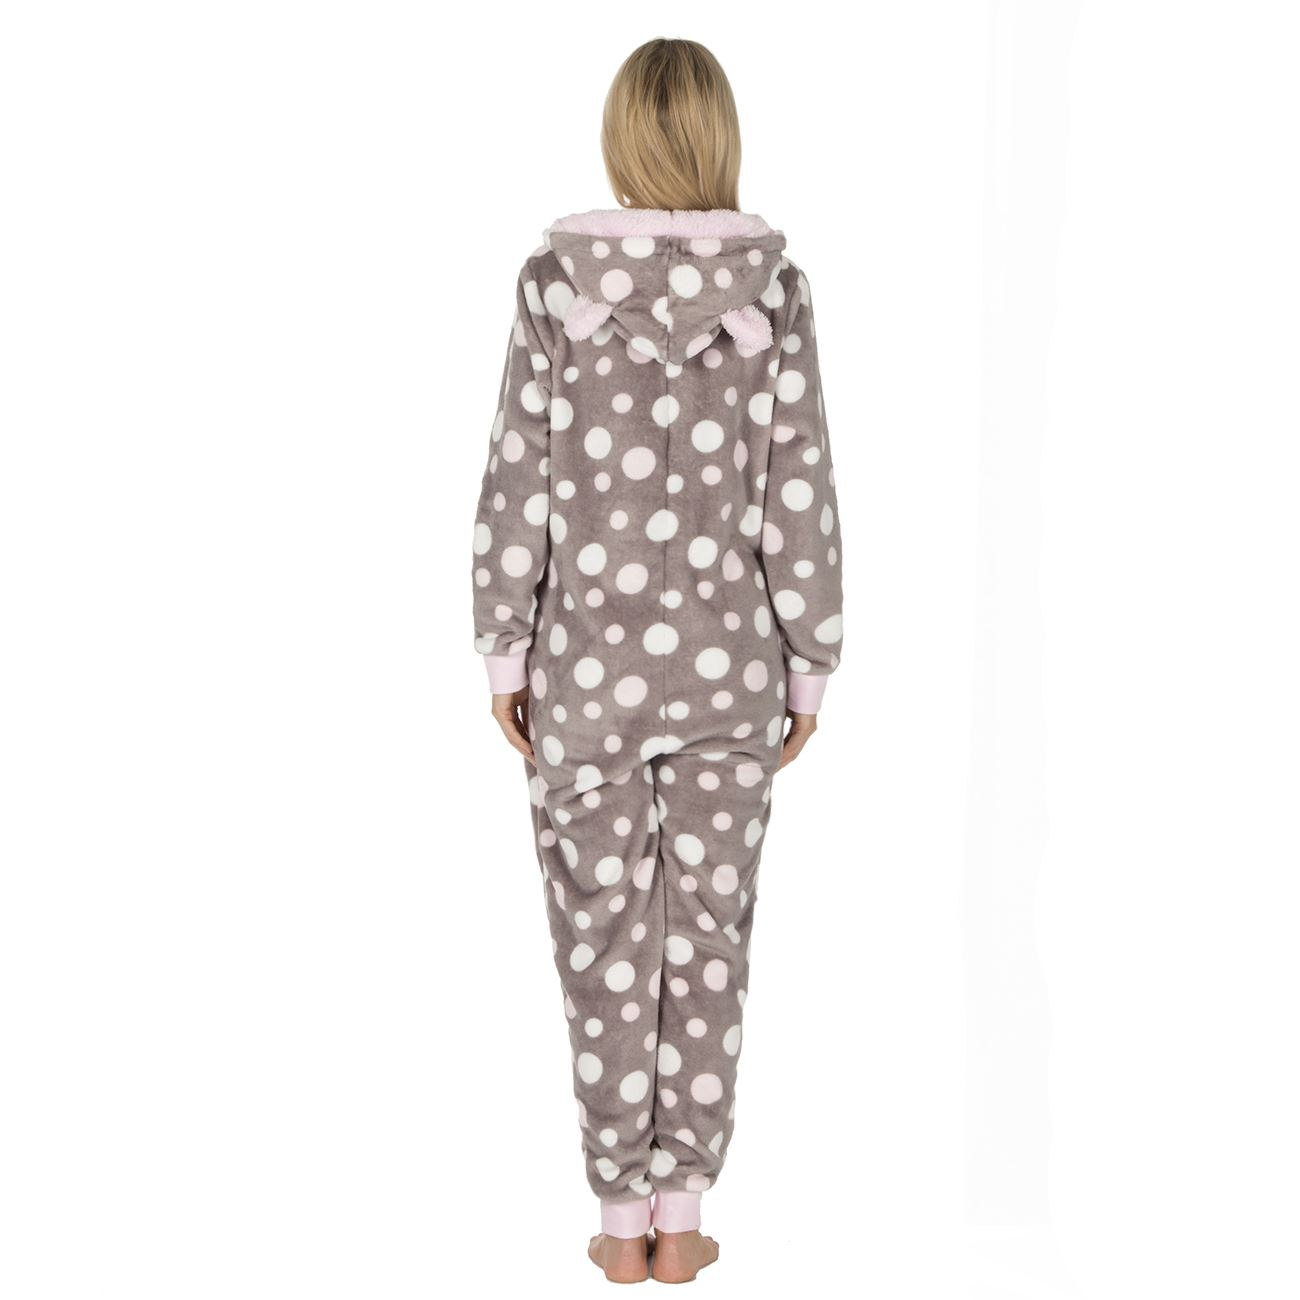 Ladies-Womens-Girls-Fleece-All-In-One-Pyjamas-Outfit-Jumpsuit-Costume-Size-6-18 thumbnail 29